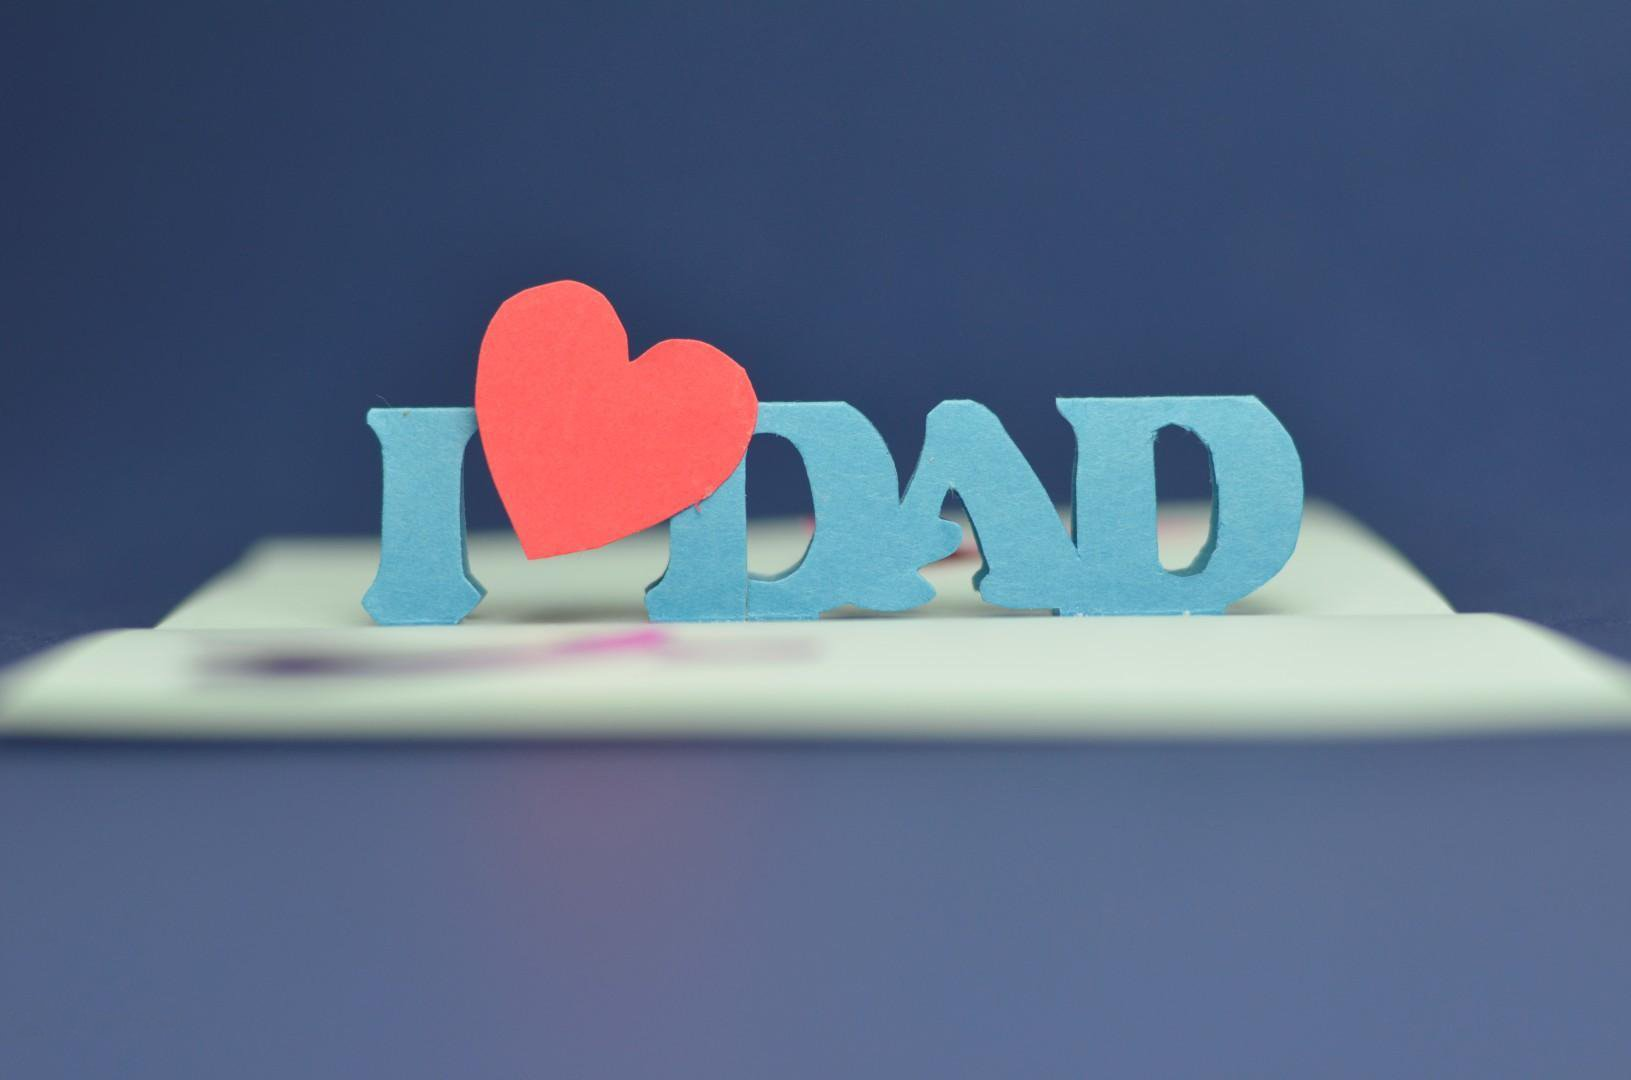 I Love You Dad Wallpaper - WallpaperSafari